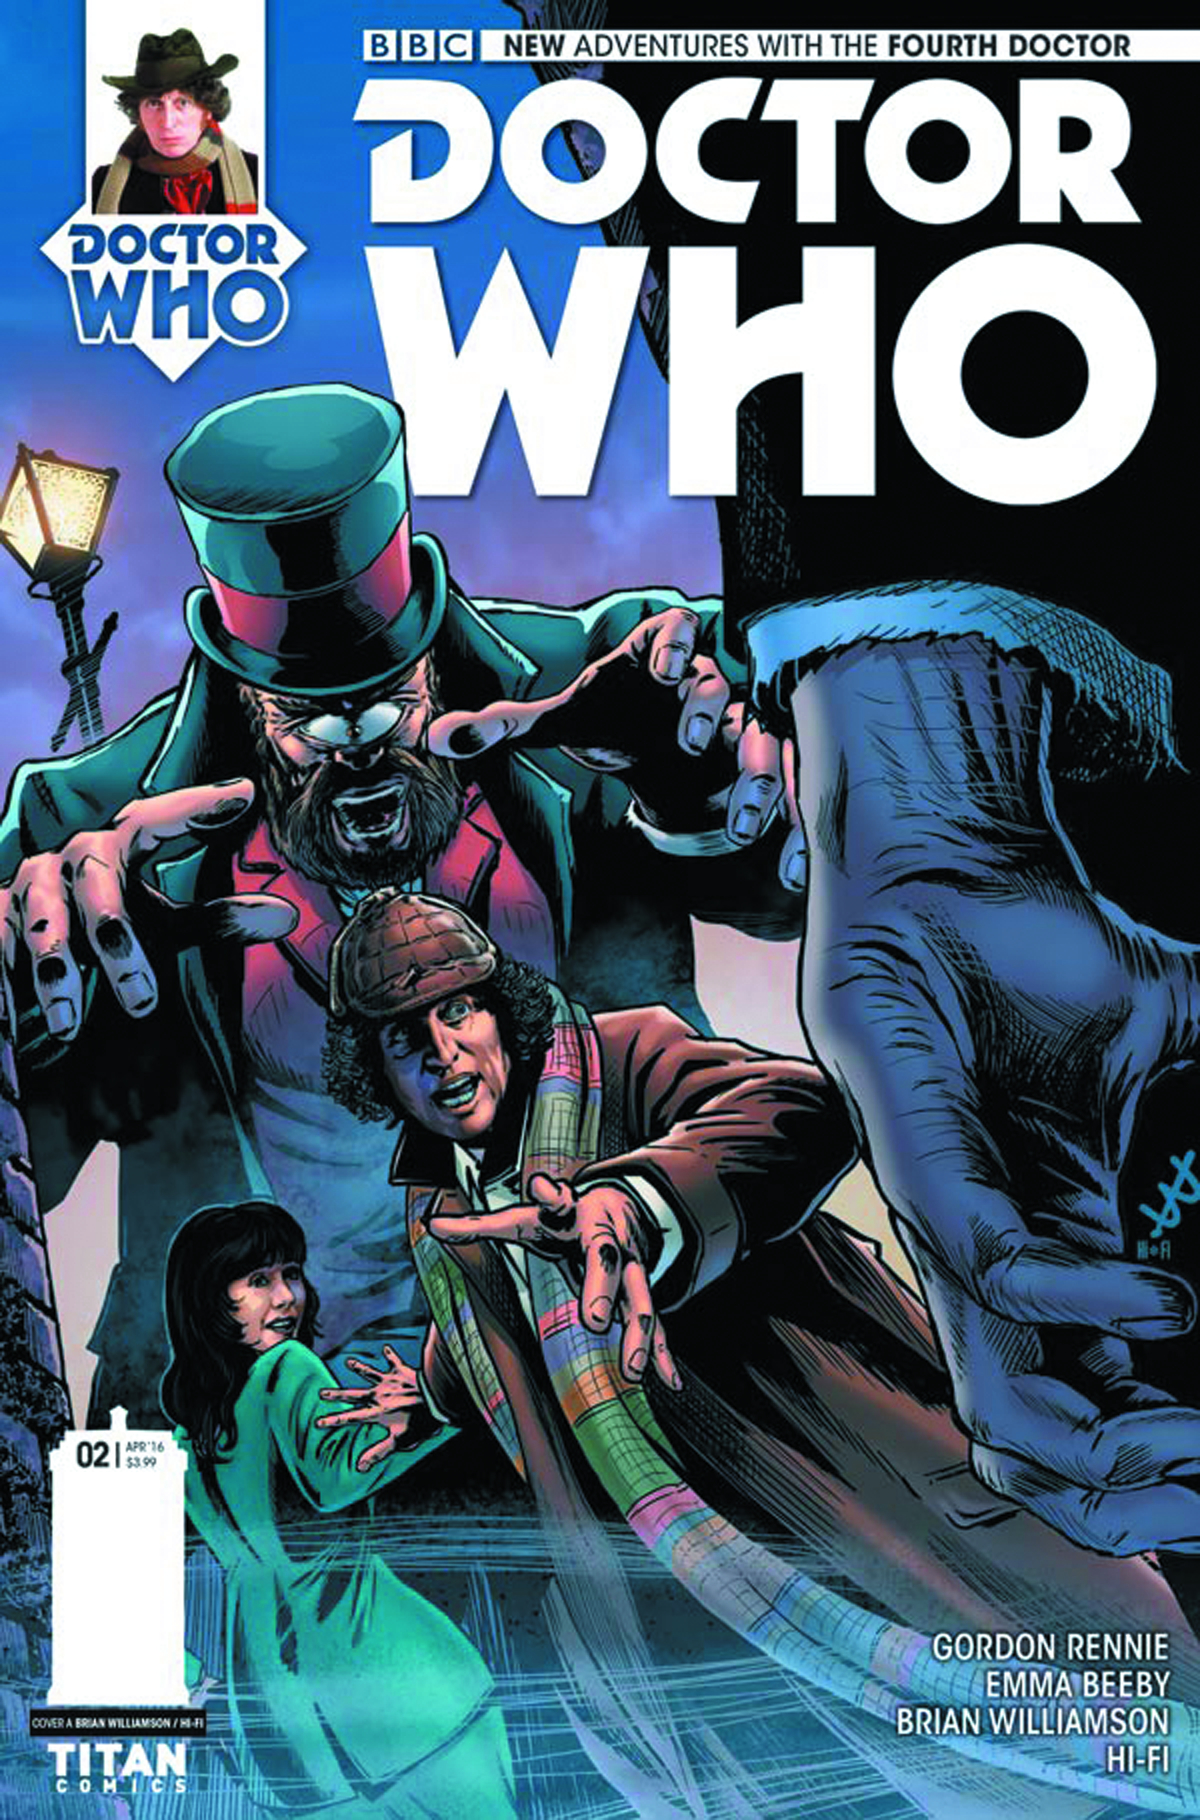 DOCTOR WHO 4TH #2 (OF 5) CVR A WILLIAMSON